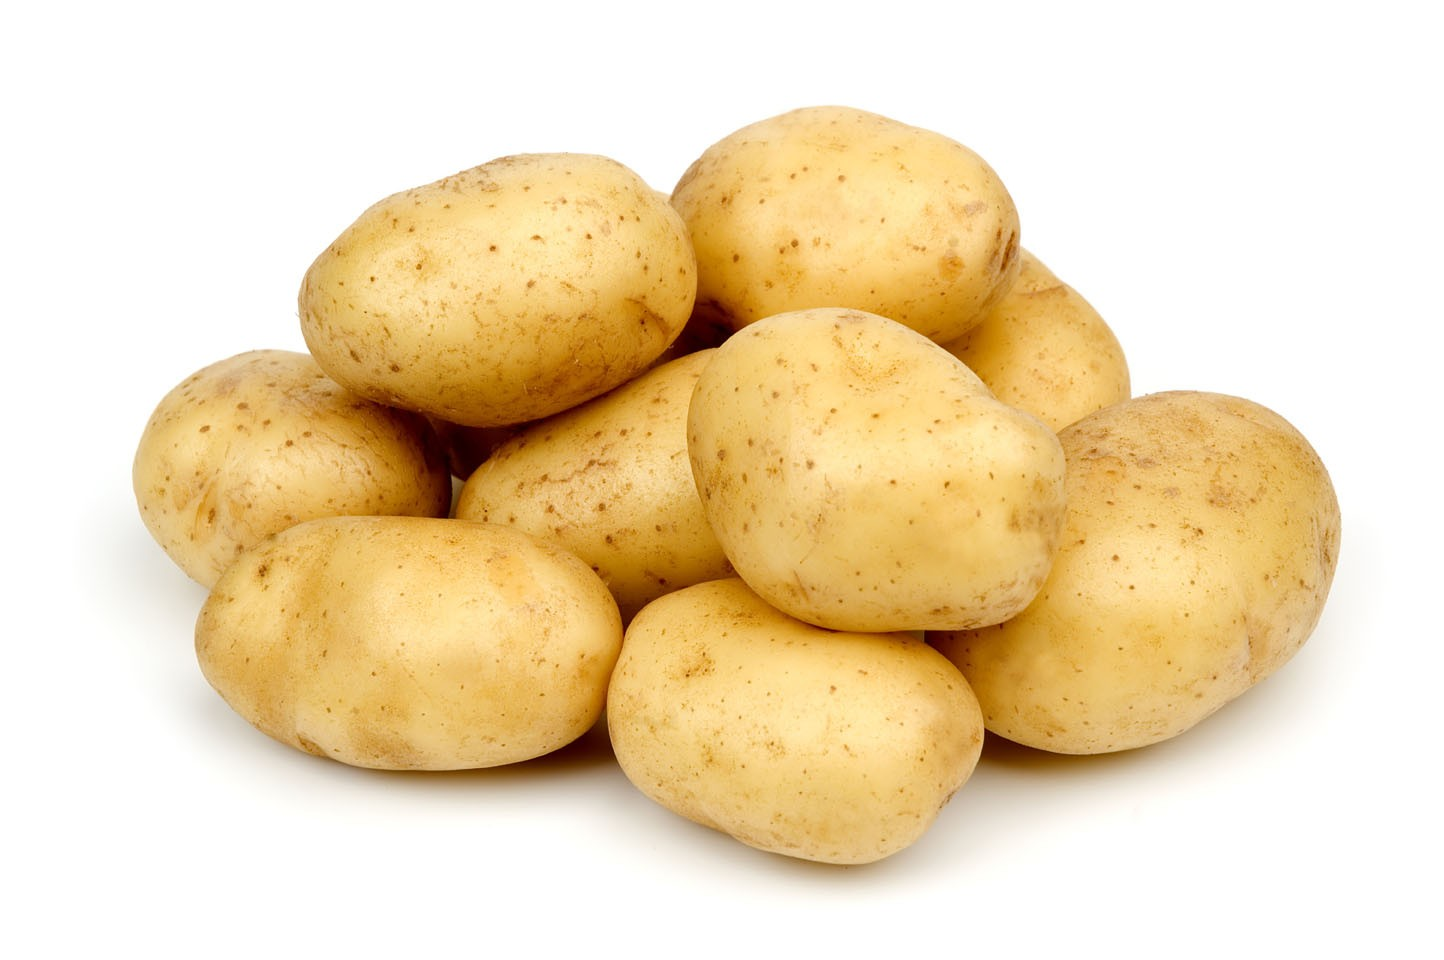 Image result for image of potato